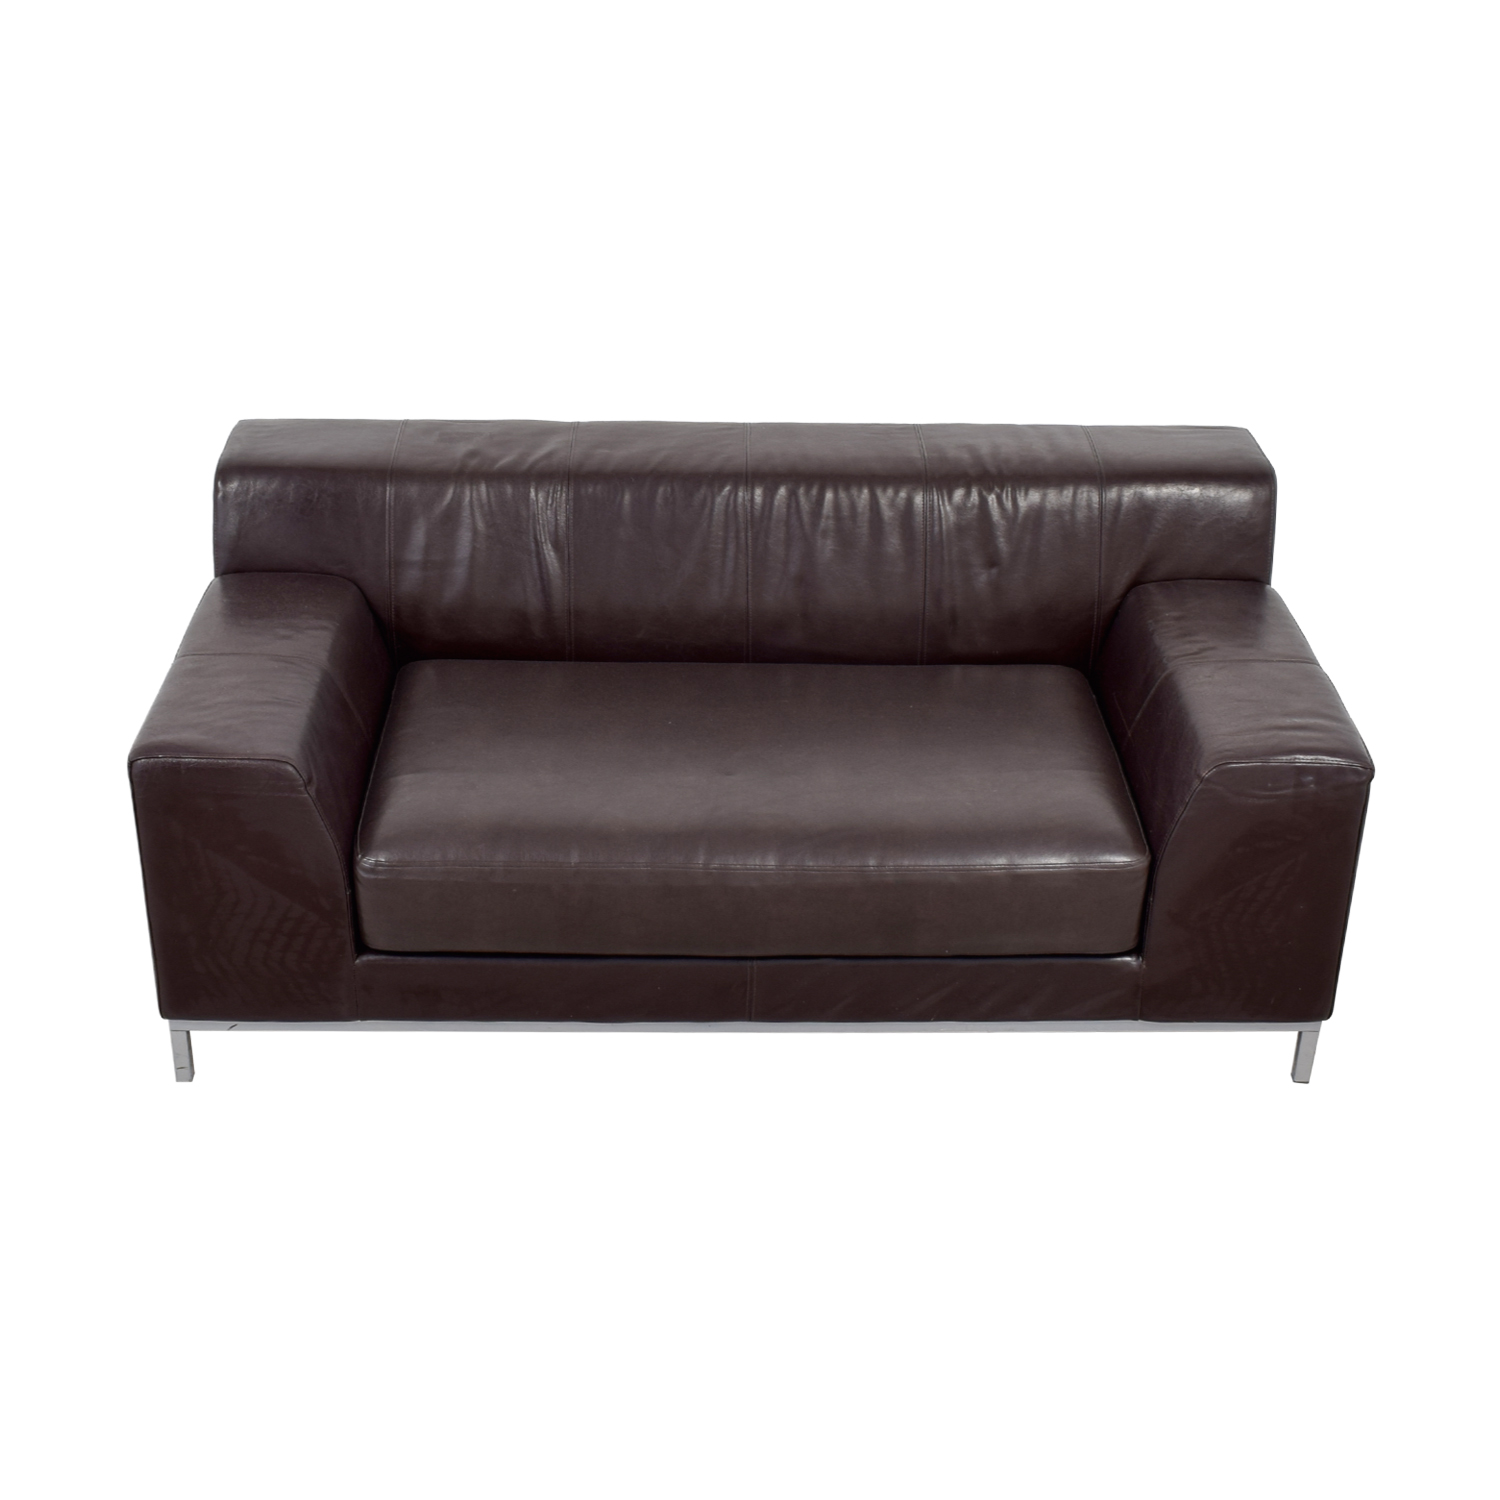 Ledersofa Ikea Kramfors 90 Off Ikea Ikea Kramfors Brown Leather Love Seat Sofas